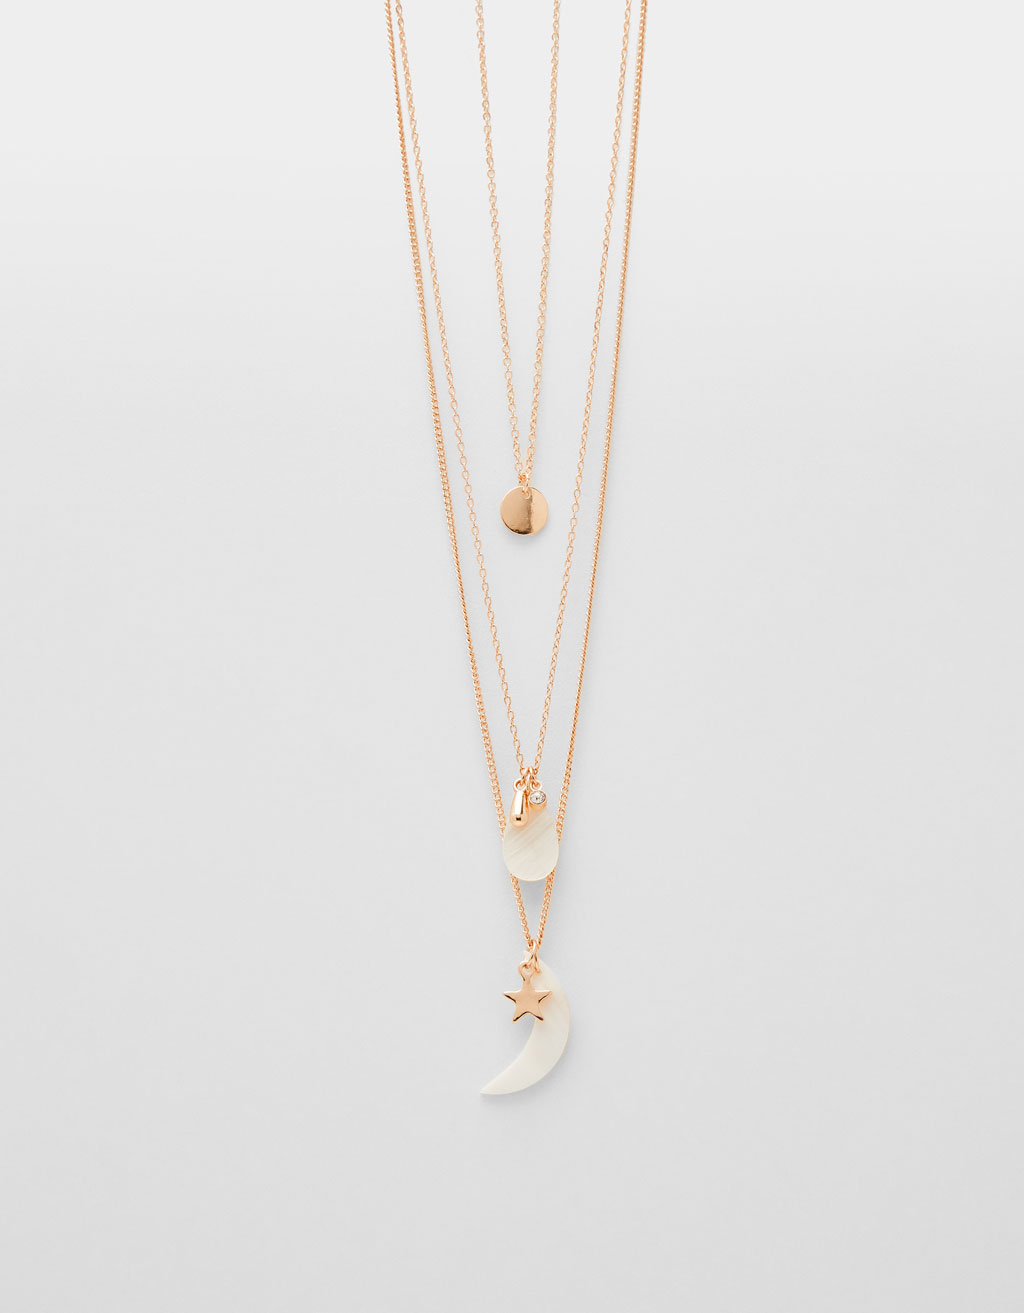 Multi-strand chain necklace with mother-of-pearl pendant